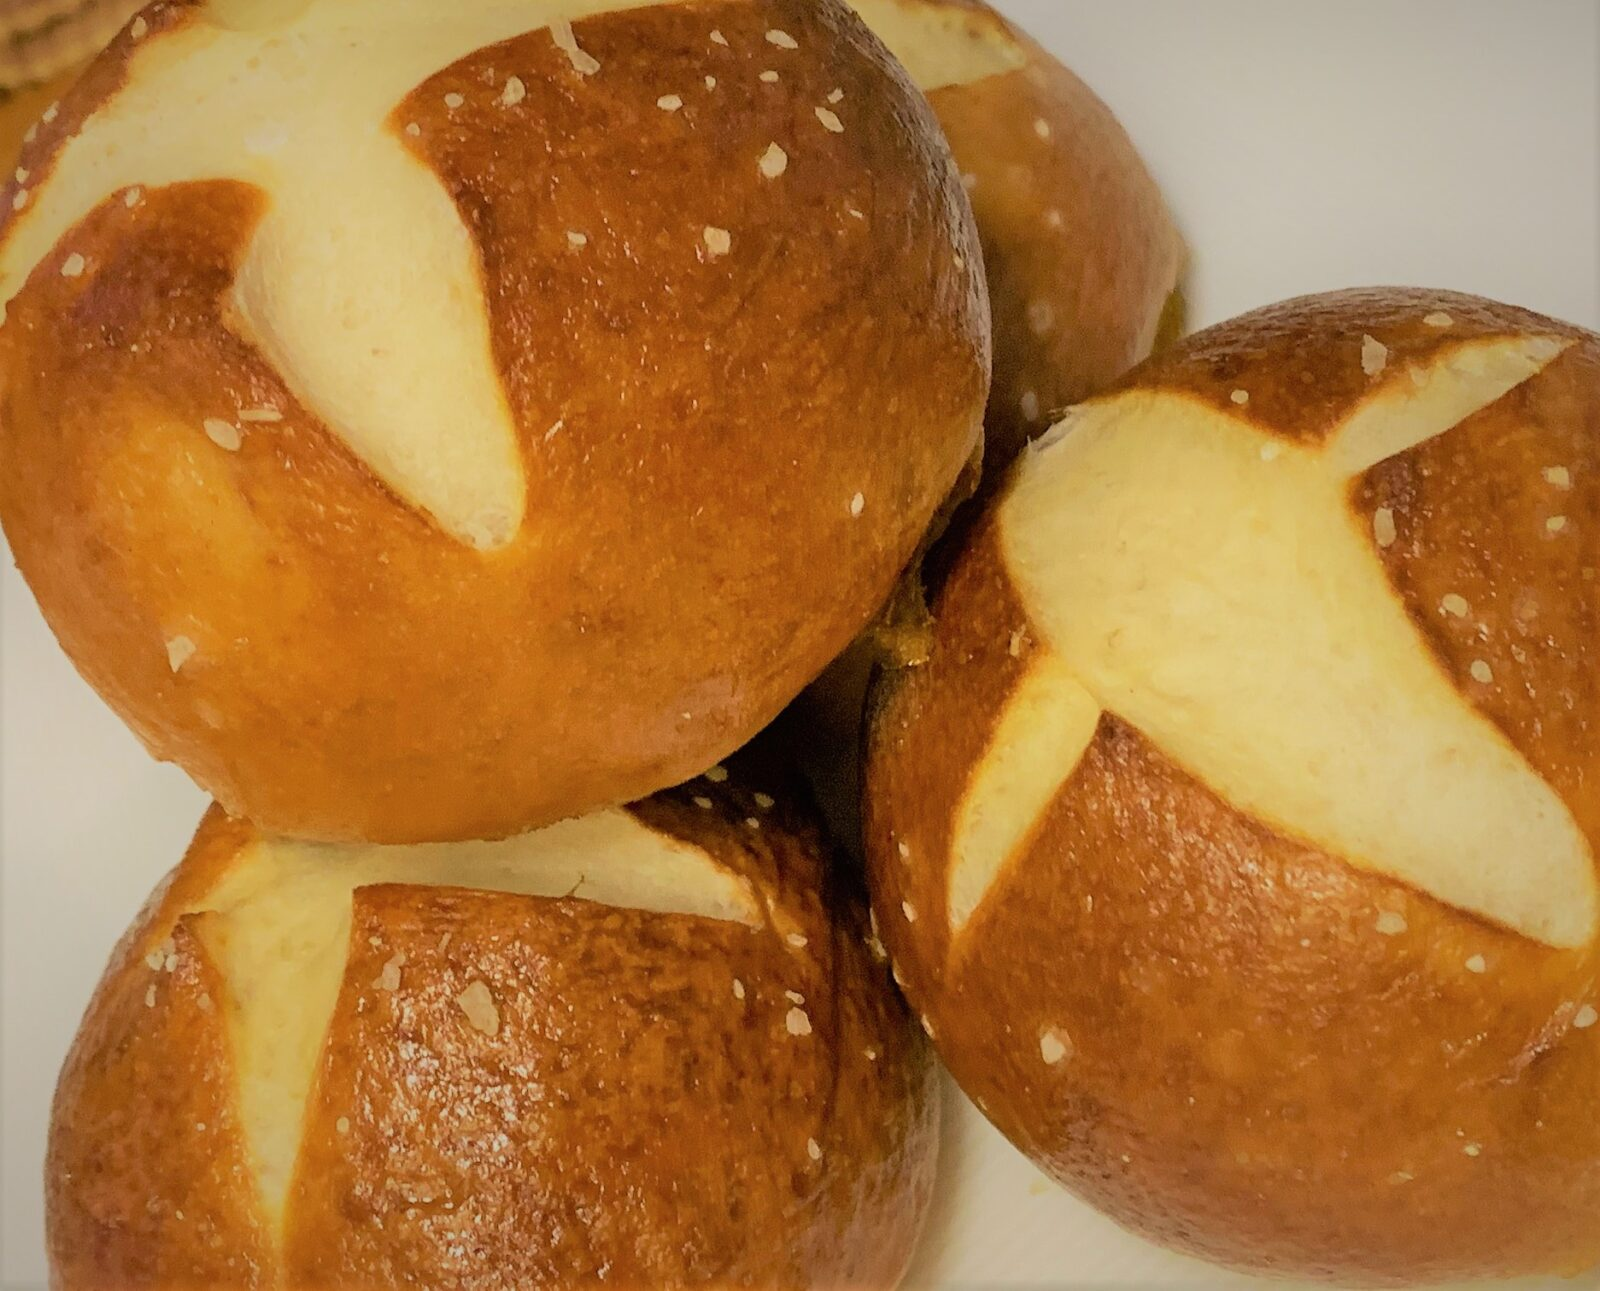 Our completed Pretzel Slider Rolls